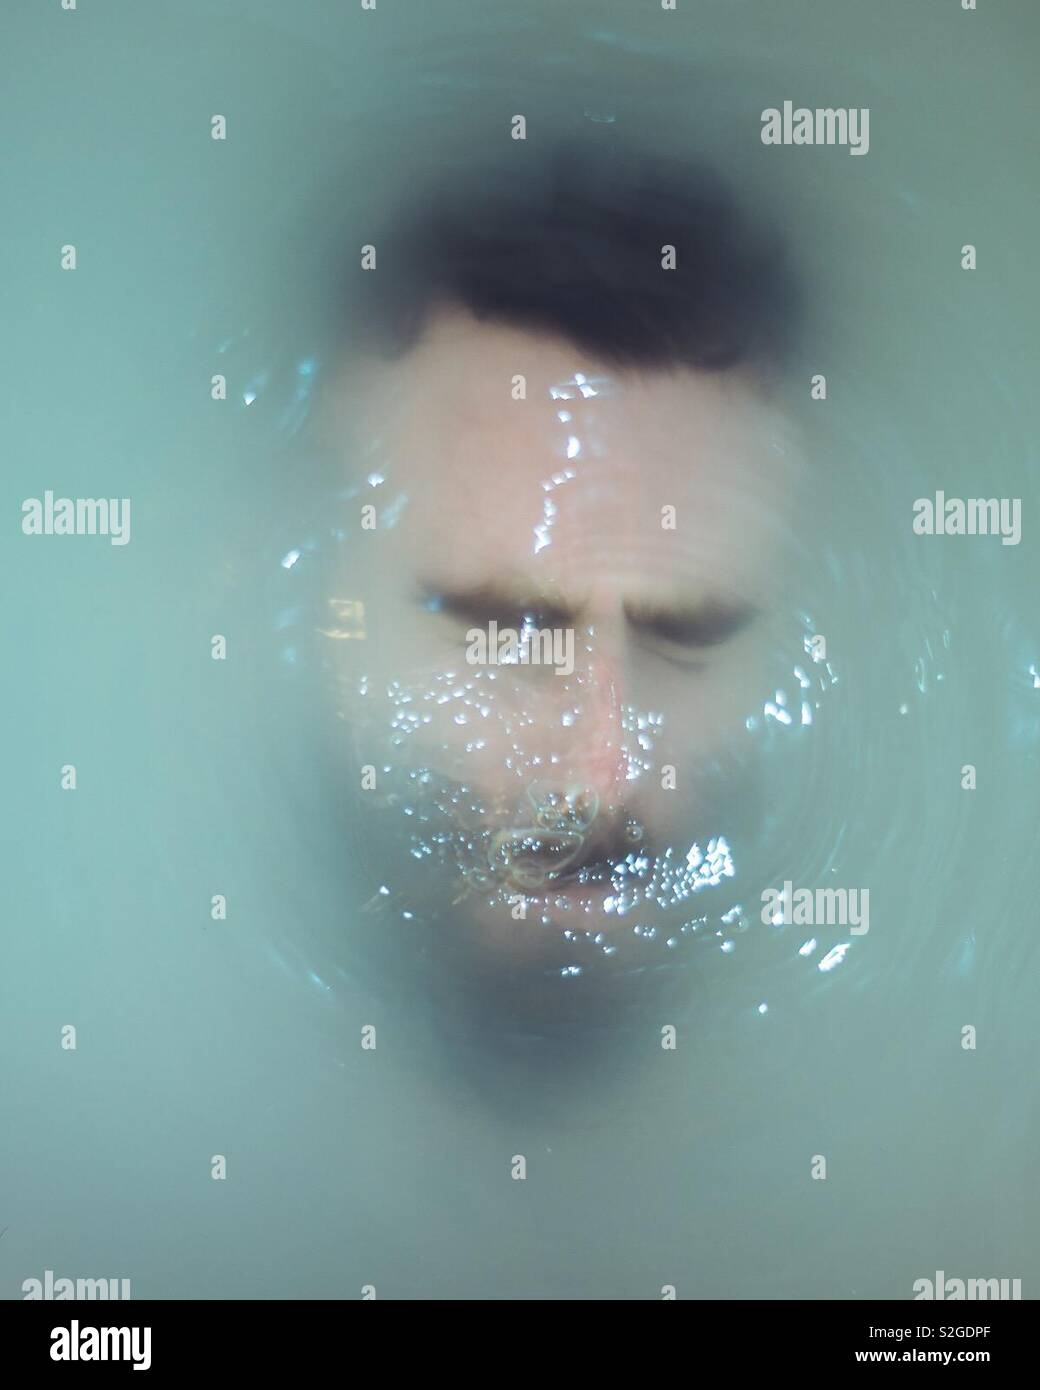 Guy with beard and eyes closed is submerged under milky colored water. - Stock Image